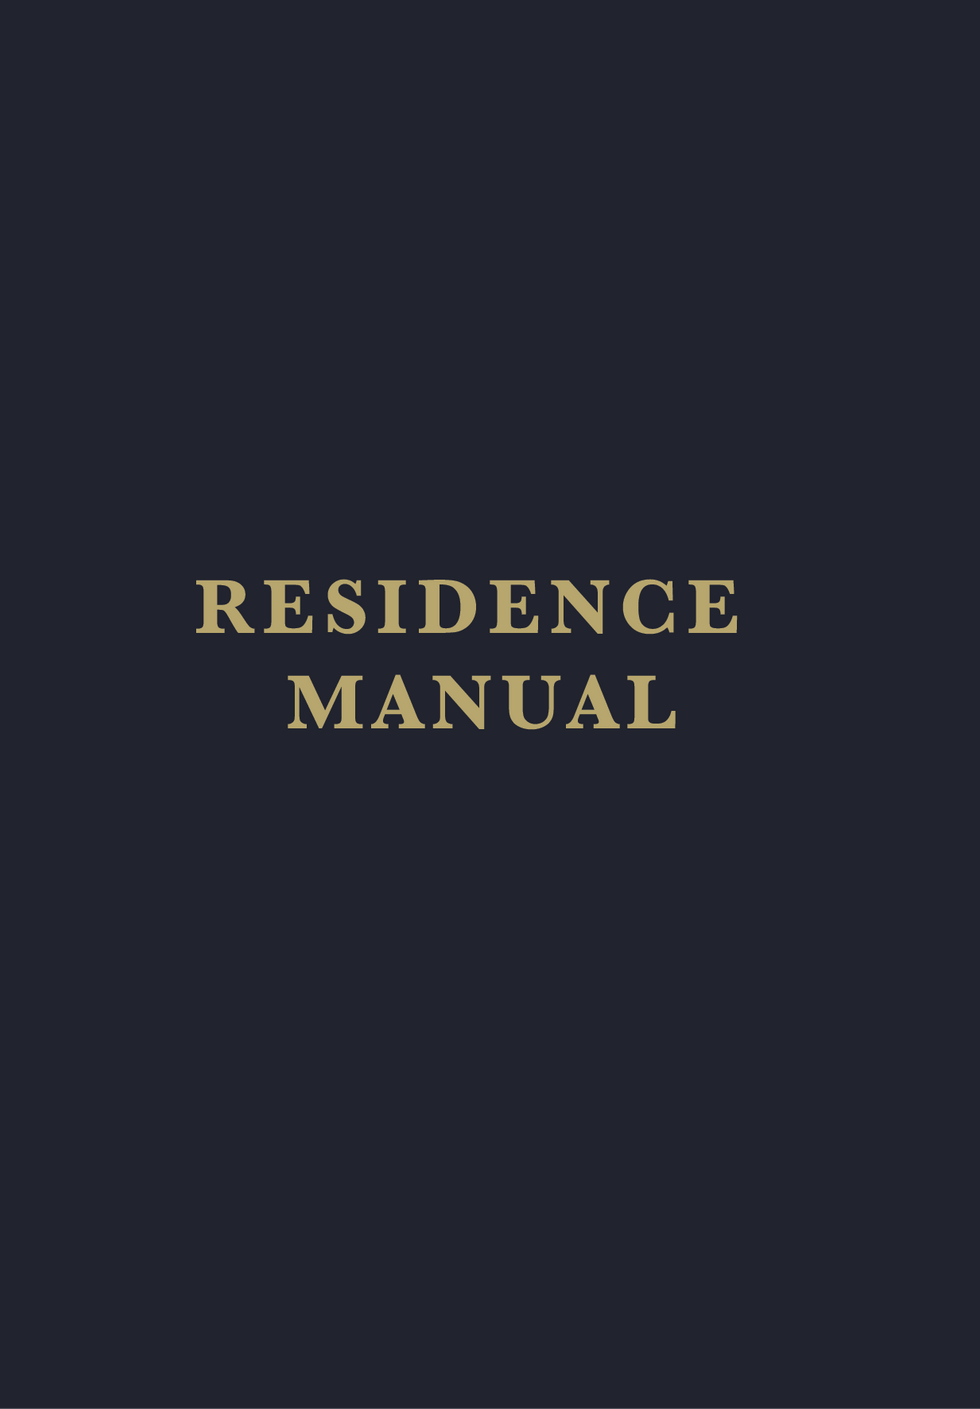 HOUSE MANUAL-01.png